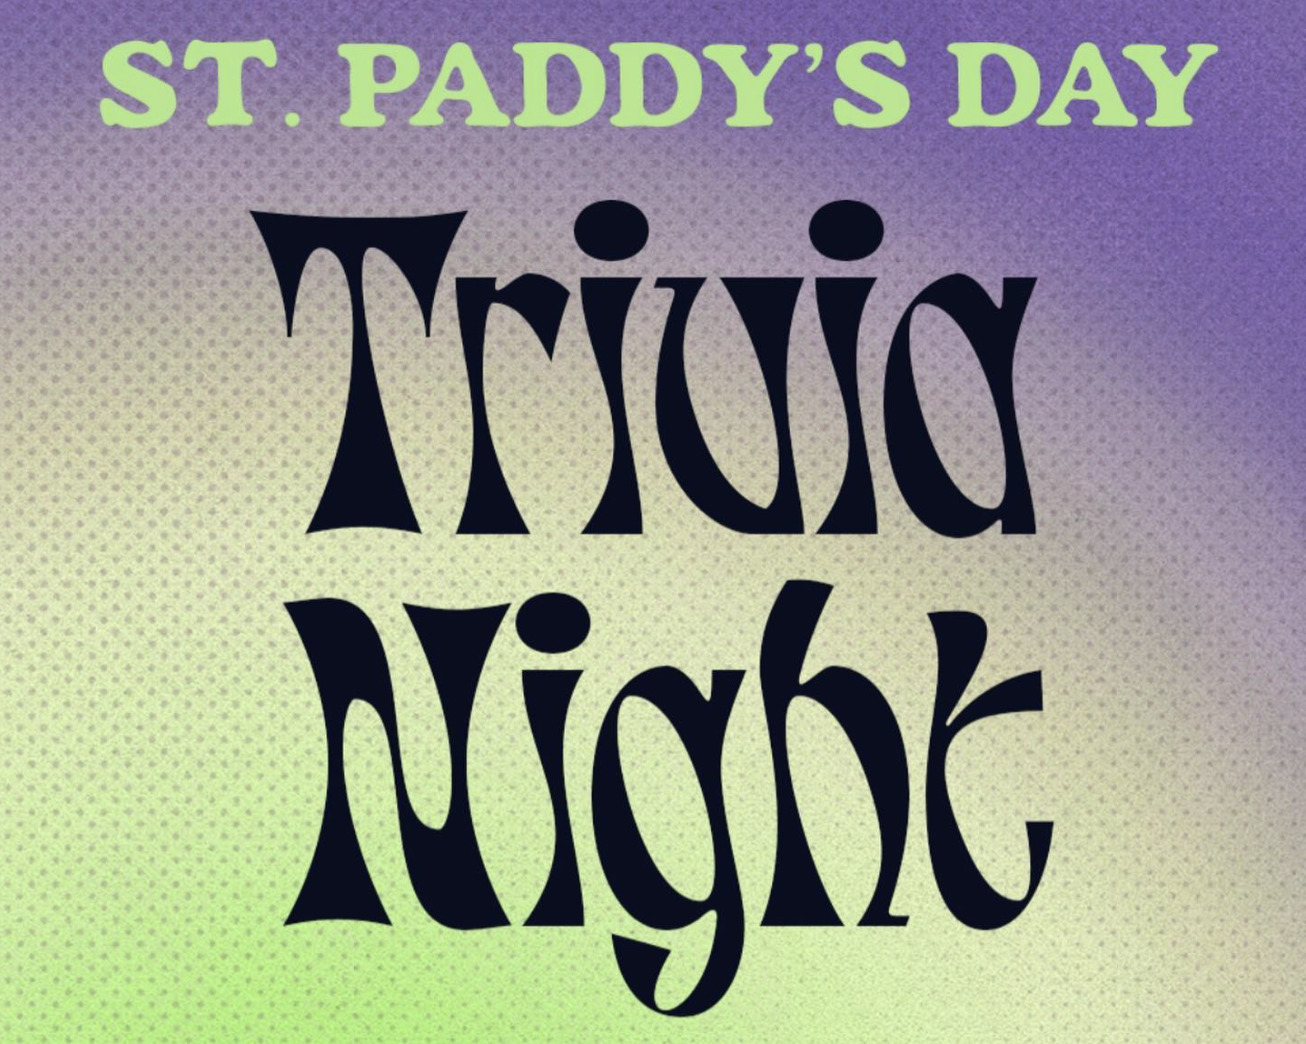 St. Paddy's Day Trivia Night!